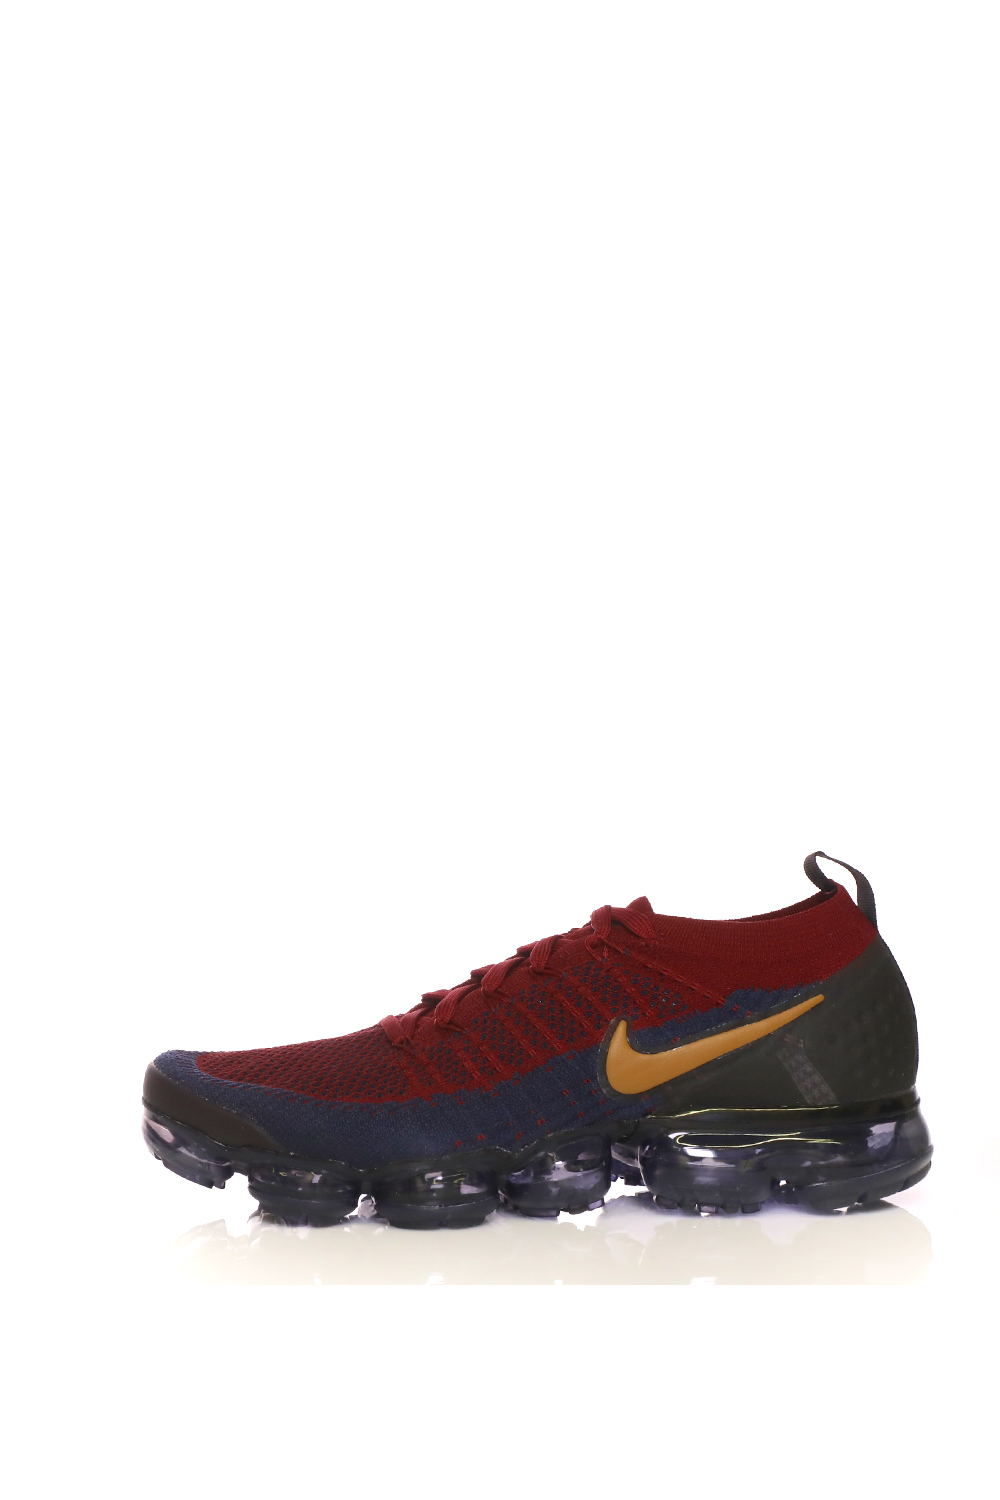 NIKE – Ανδρικά παπούτσια NIKE AIR VAPORMAX FLYKNIT 2 μπορντό